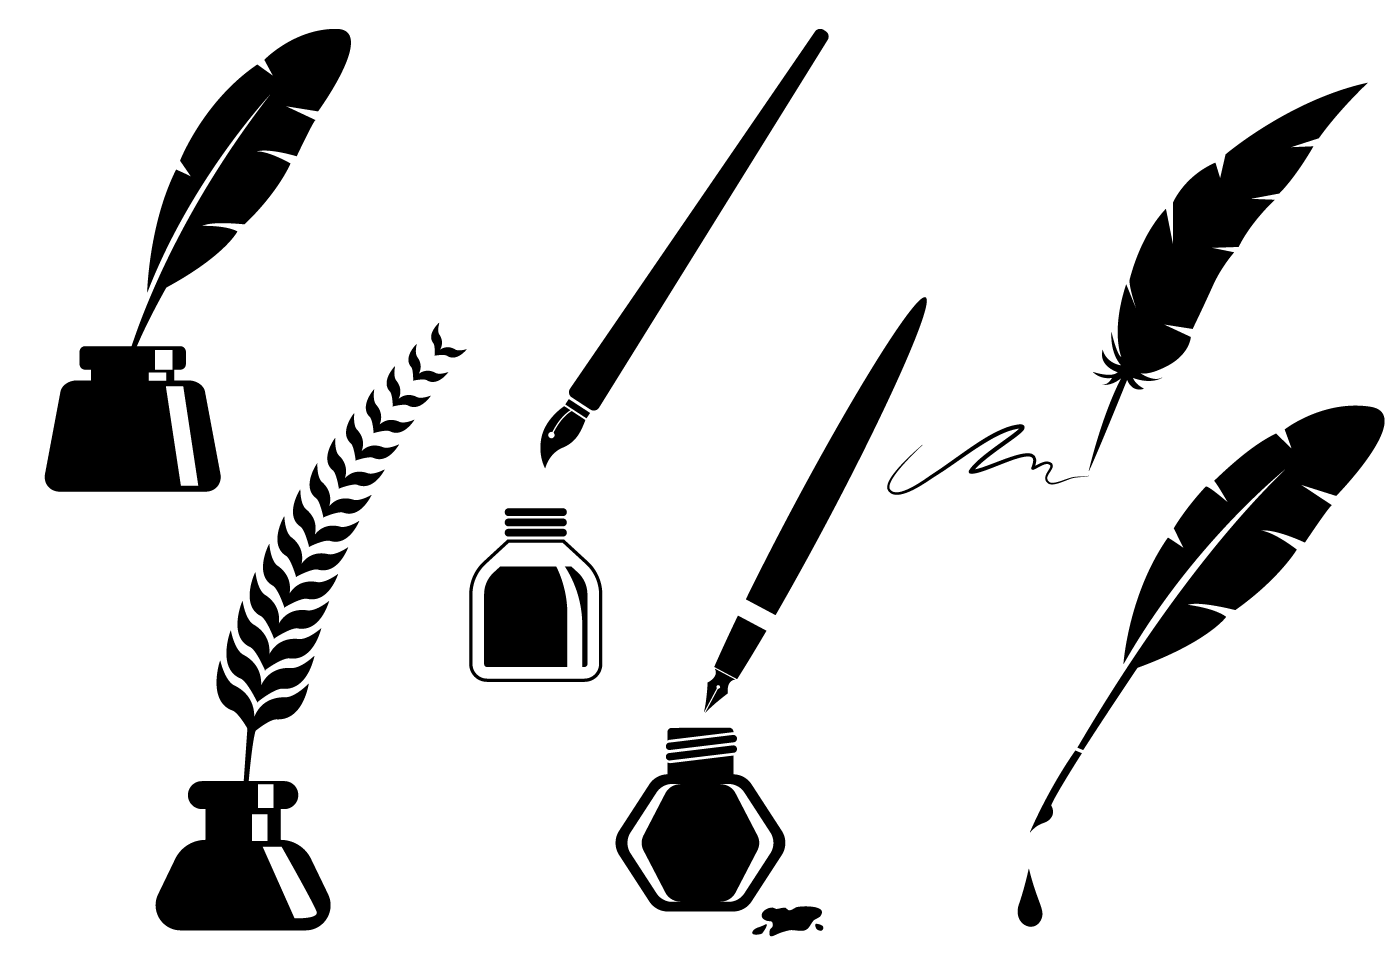 Classic Inkwell Silhouette Vectors - Download Free Vector ...